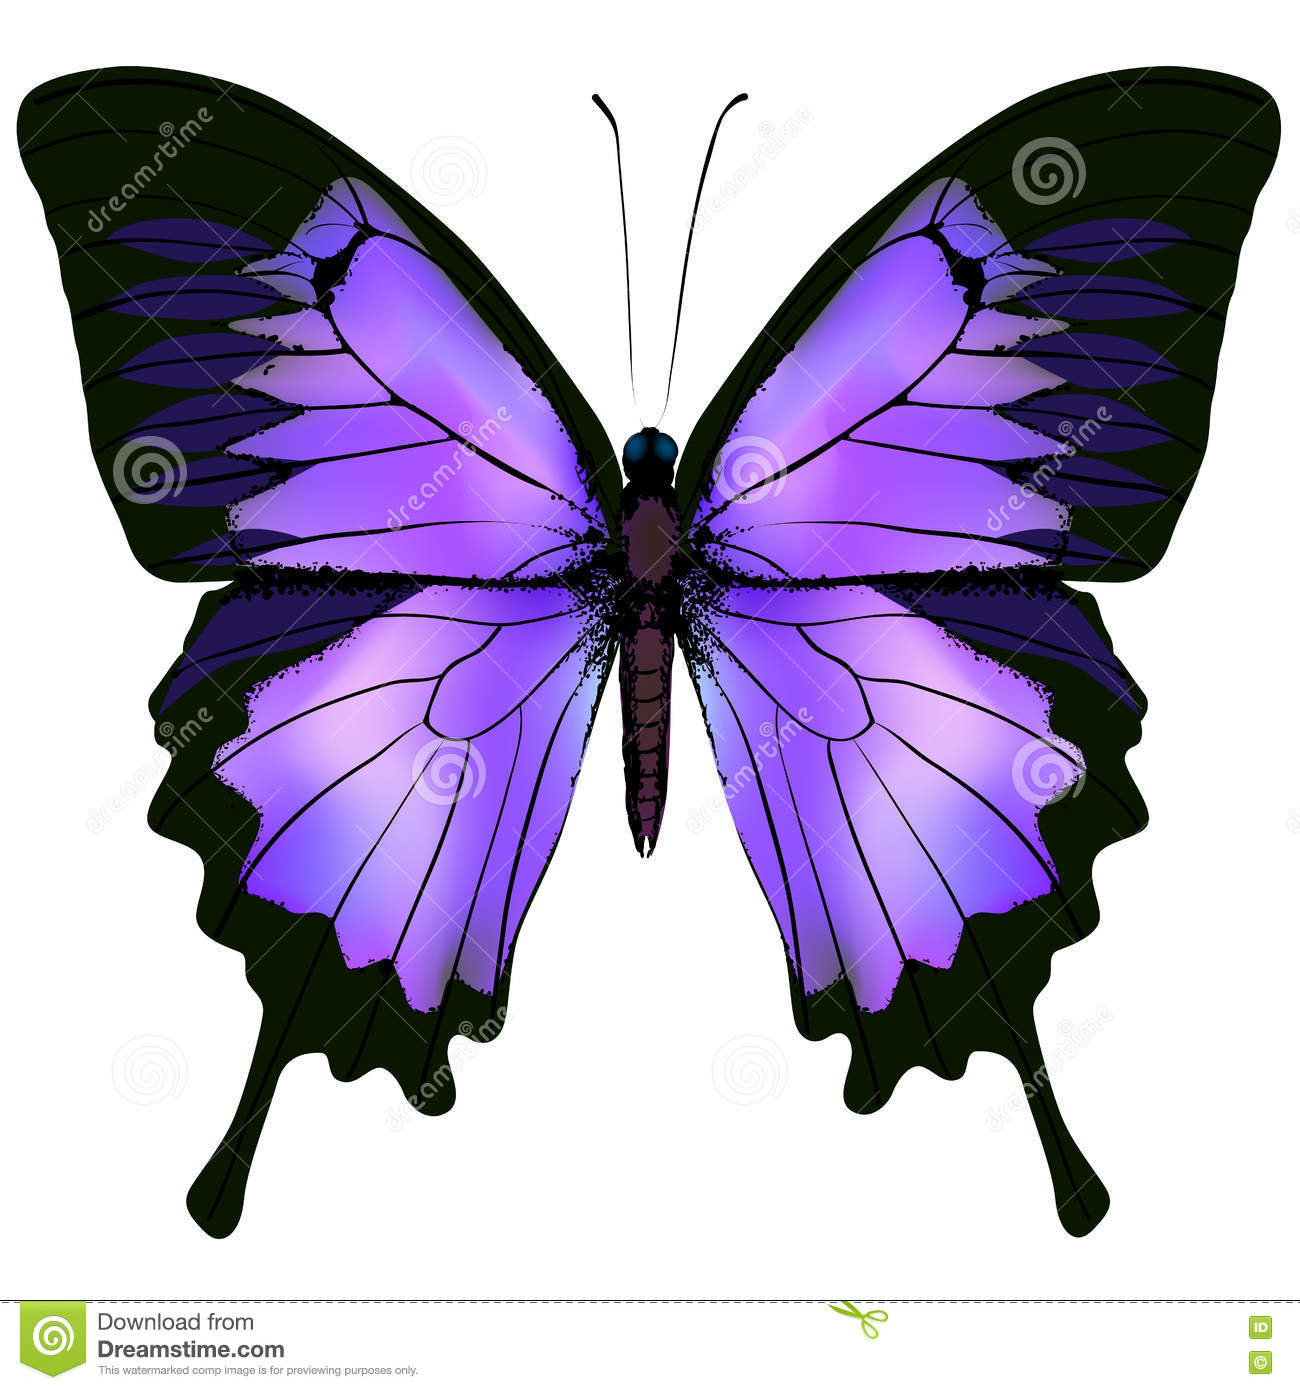 Pink butterfly vector background hd wallpapers pink butterfly vector - Butterfly Vector Illustration Of Beautiful Pink And Purple Color Royalty Free Stock Photography